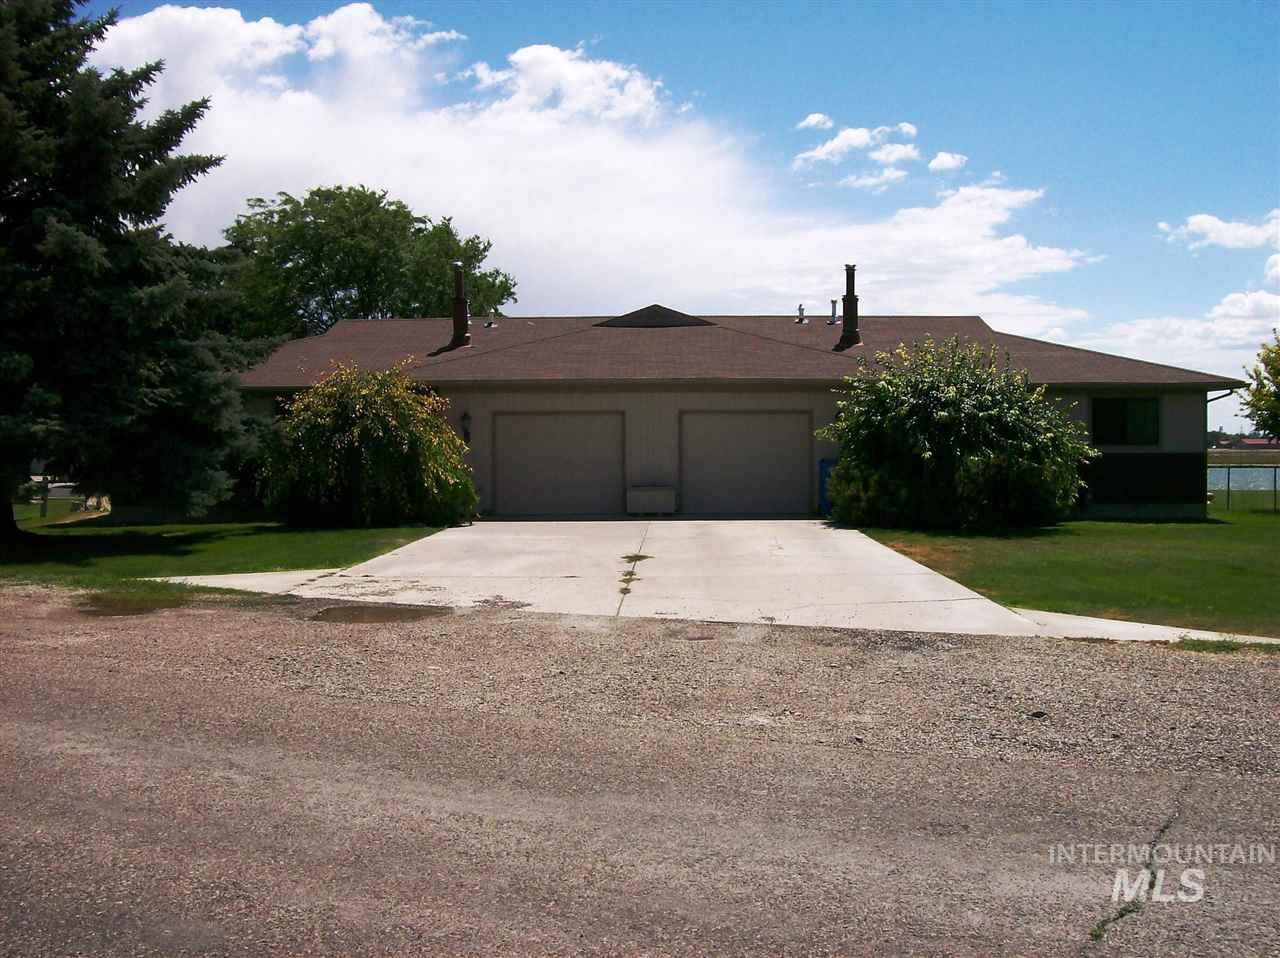 Multi-Family Home for Sale at 2343 River Road Heyburn, Idaho 83336